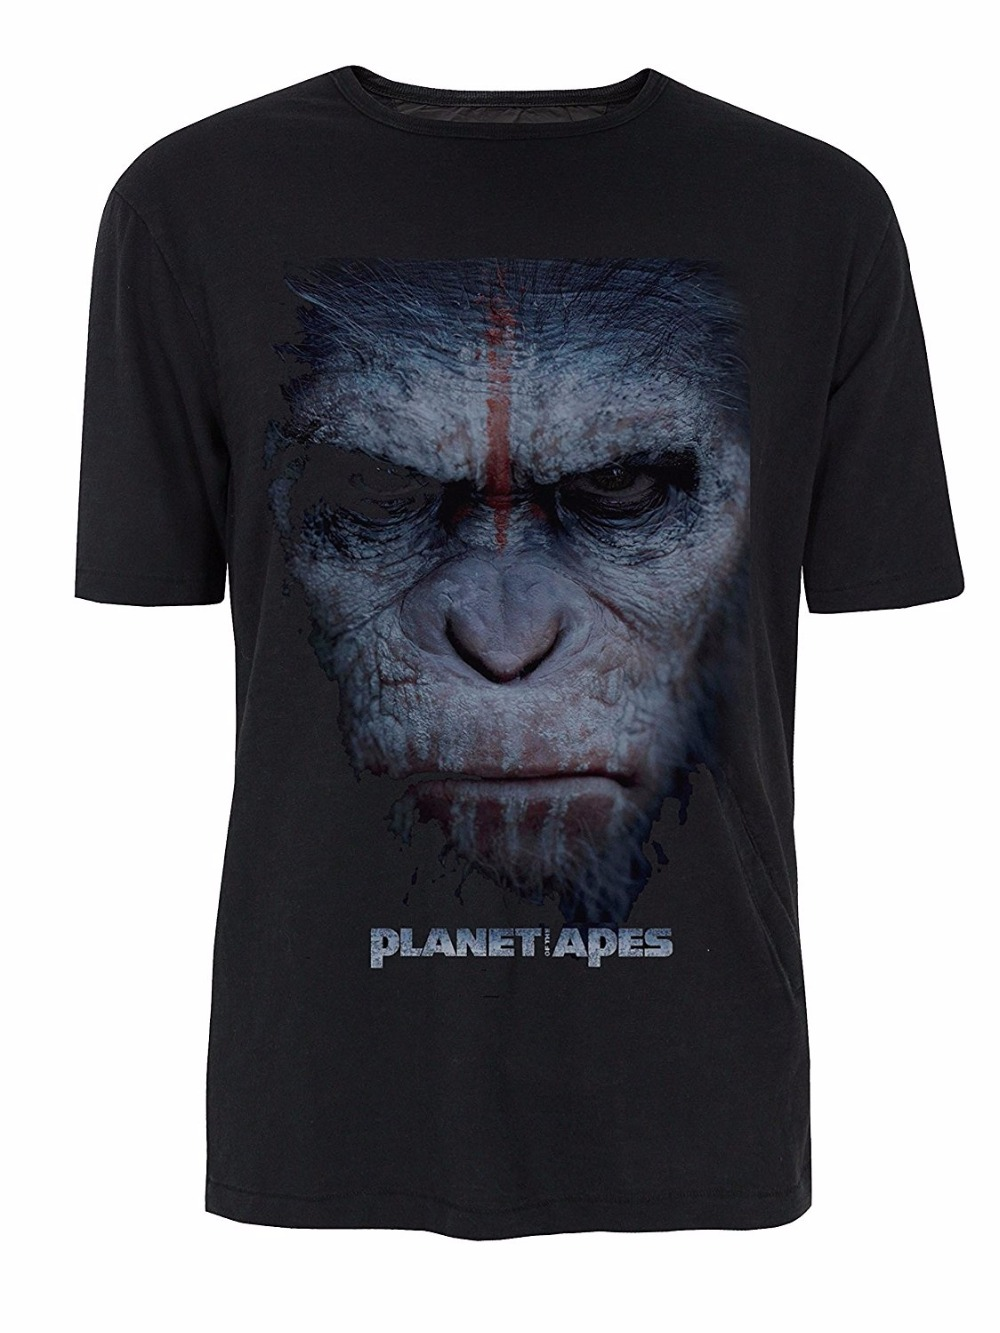 War Paint Caesar Planet Of The Apes T-Shirt Summer Cotton Casual T Shirts Novelty Cool T ...